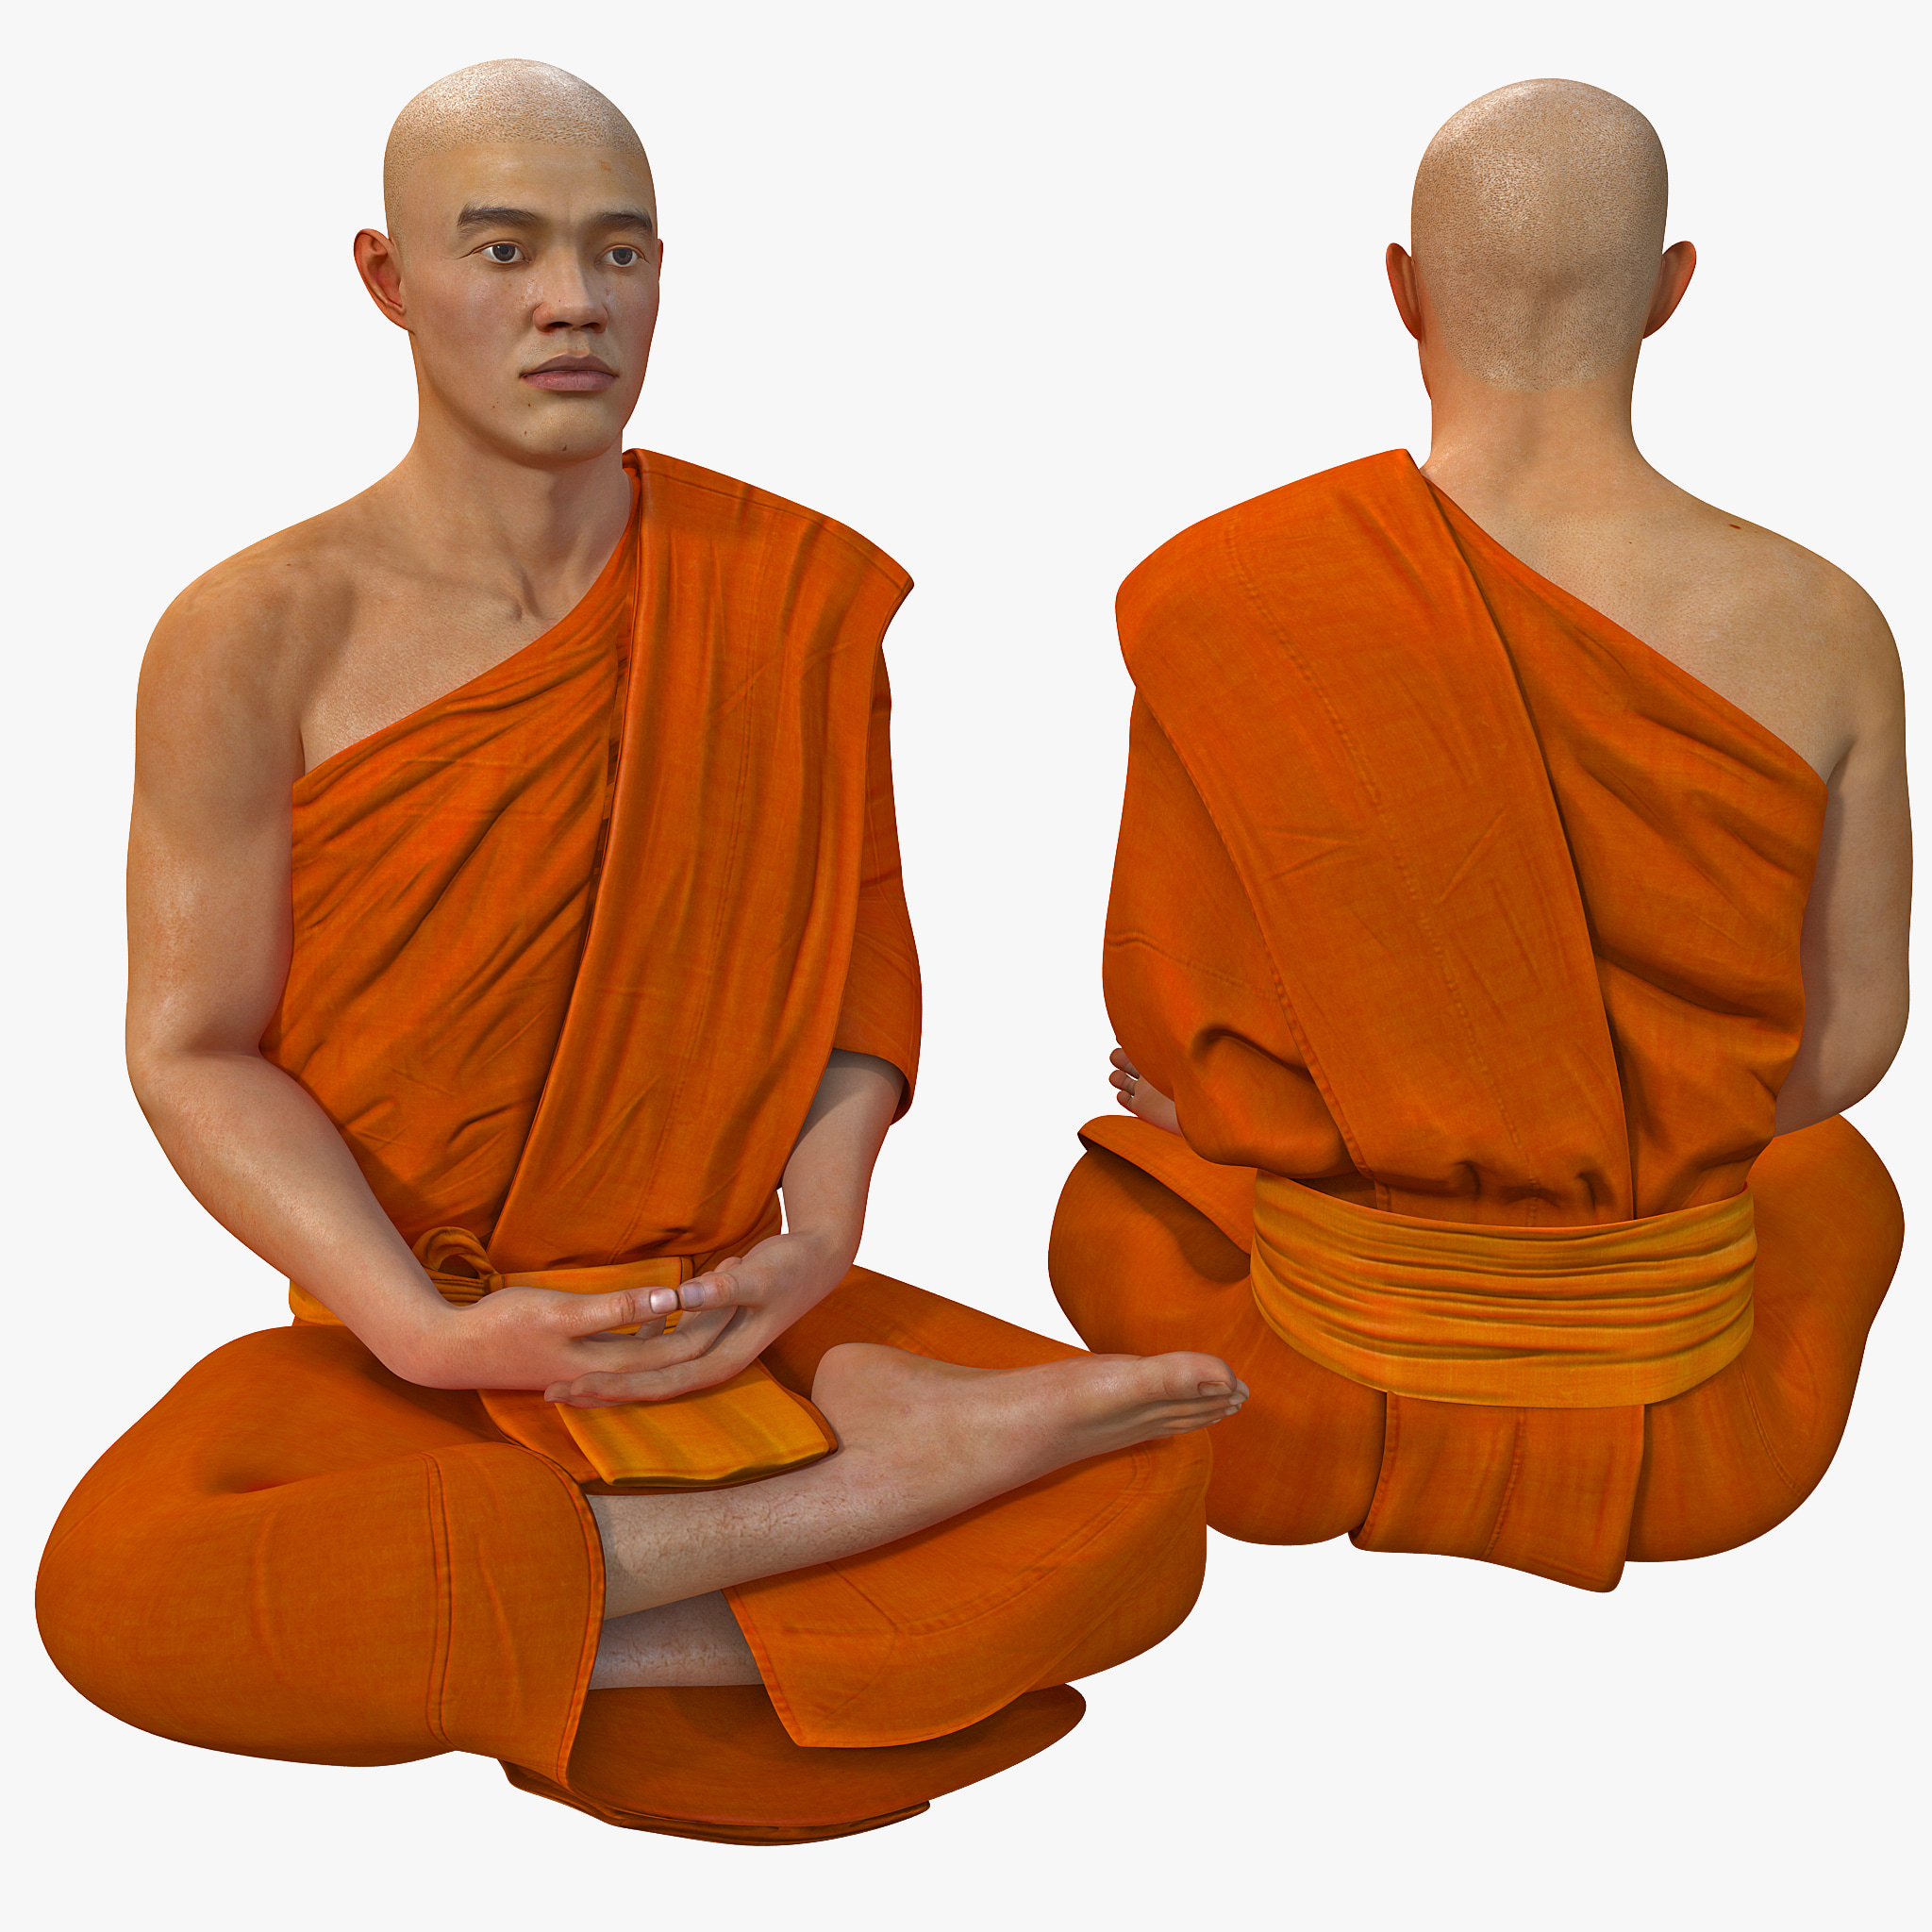 barnstable buddhist single men Meet men in west barnstable the fun and easy way — with mingle2's free online dating site thousands of single men in west barnstable are online waiting to hear from you.